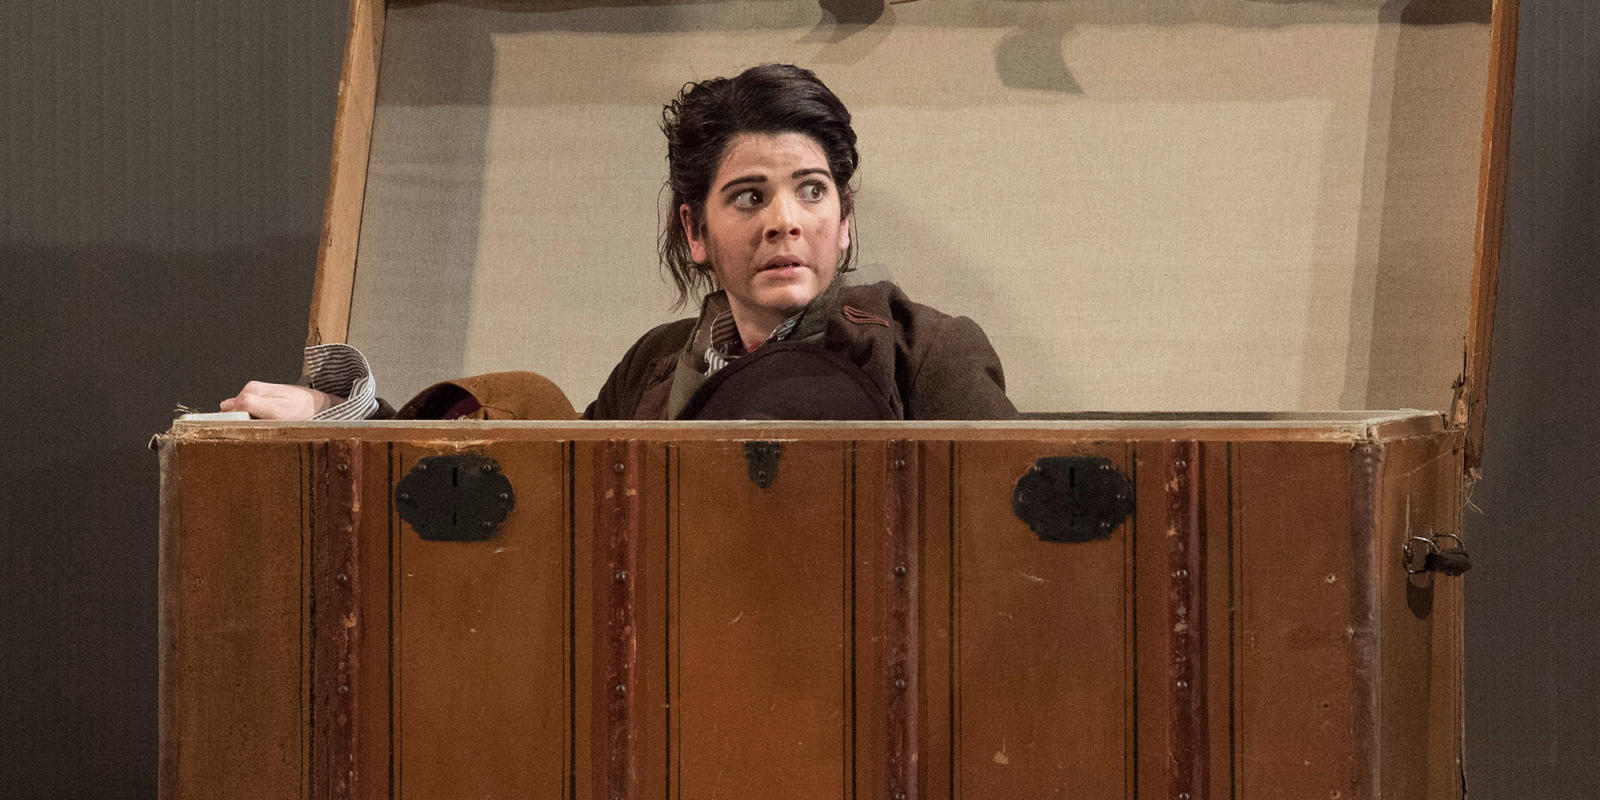 Katie Coventry as Cherubino in Mozart's The Marriage of Figaro.